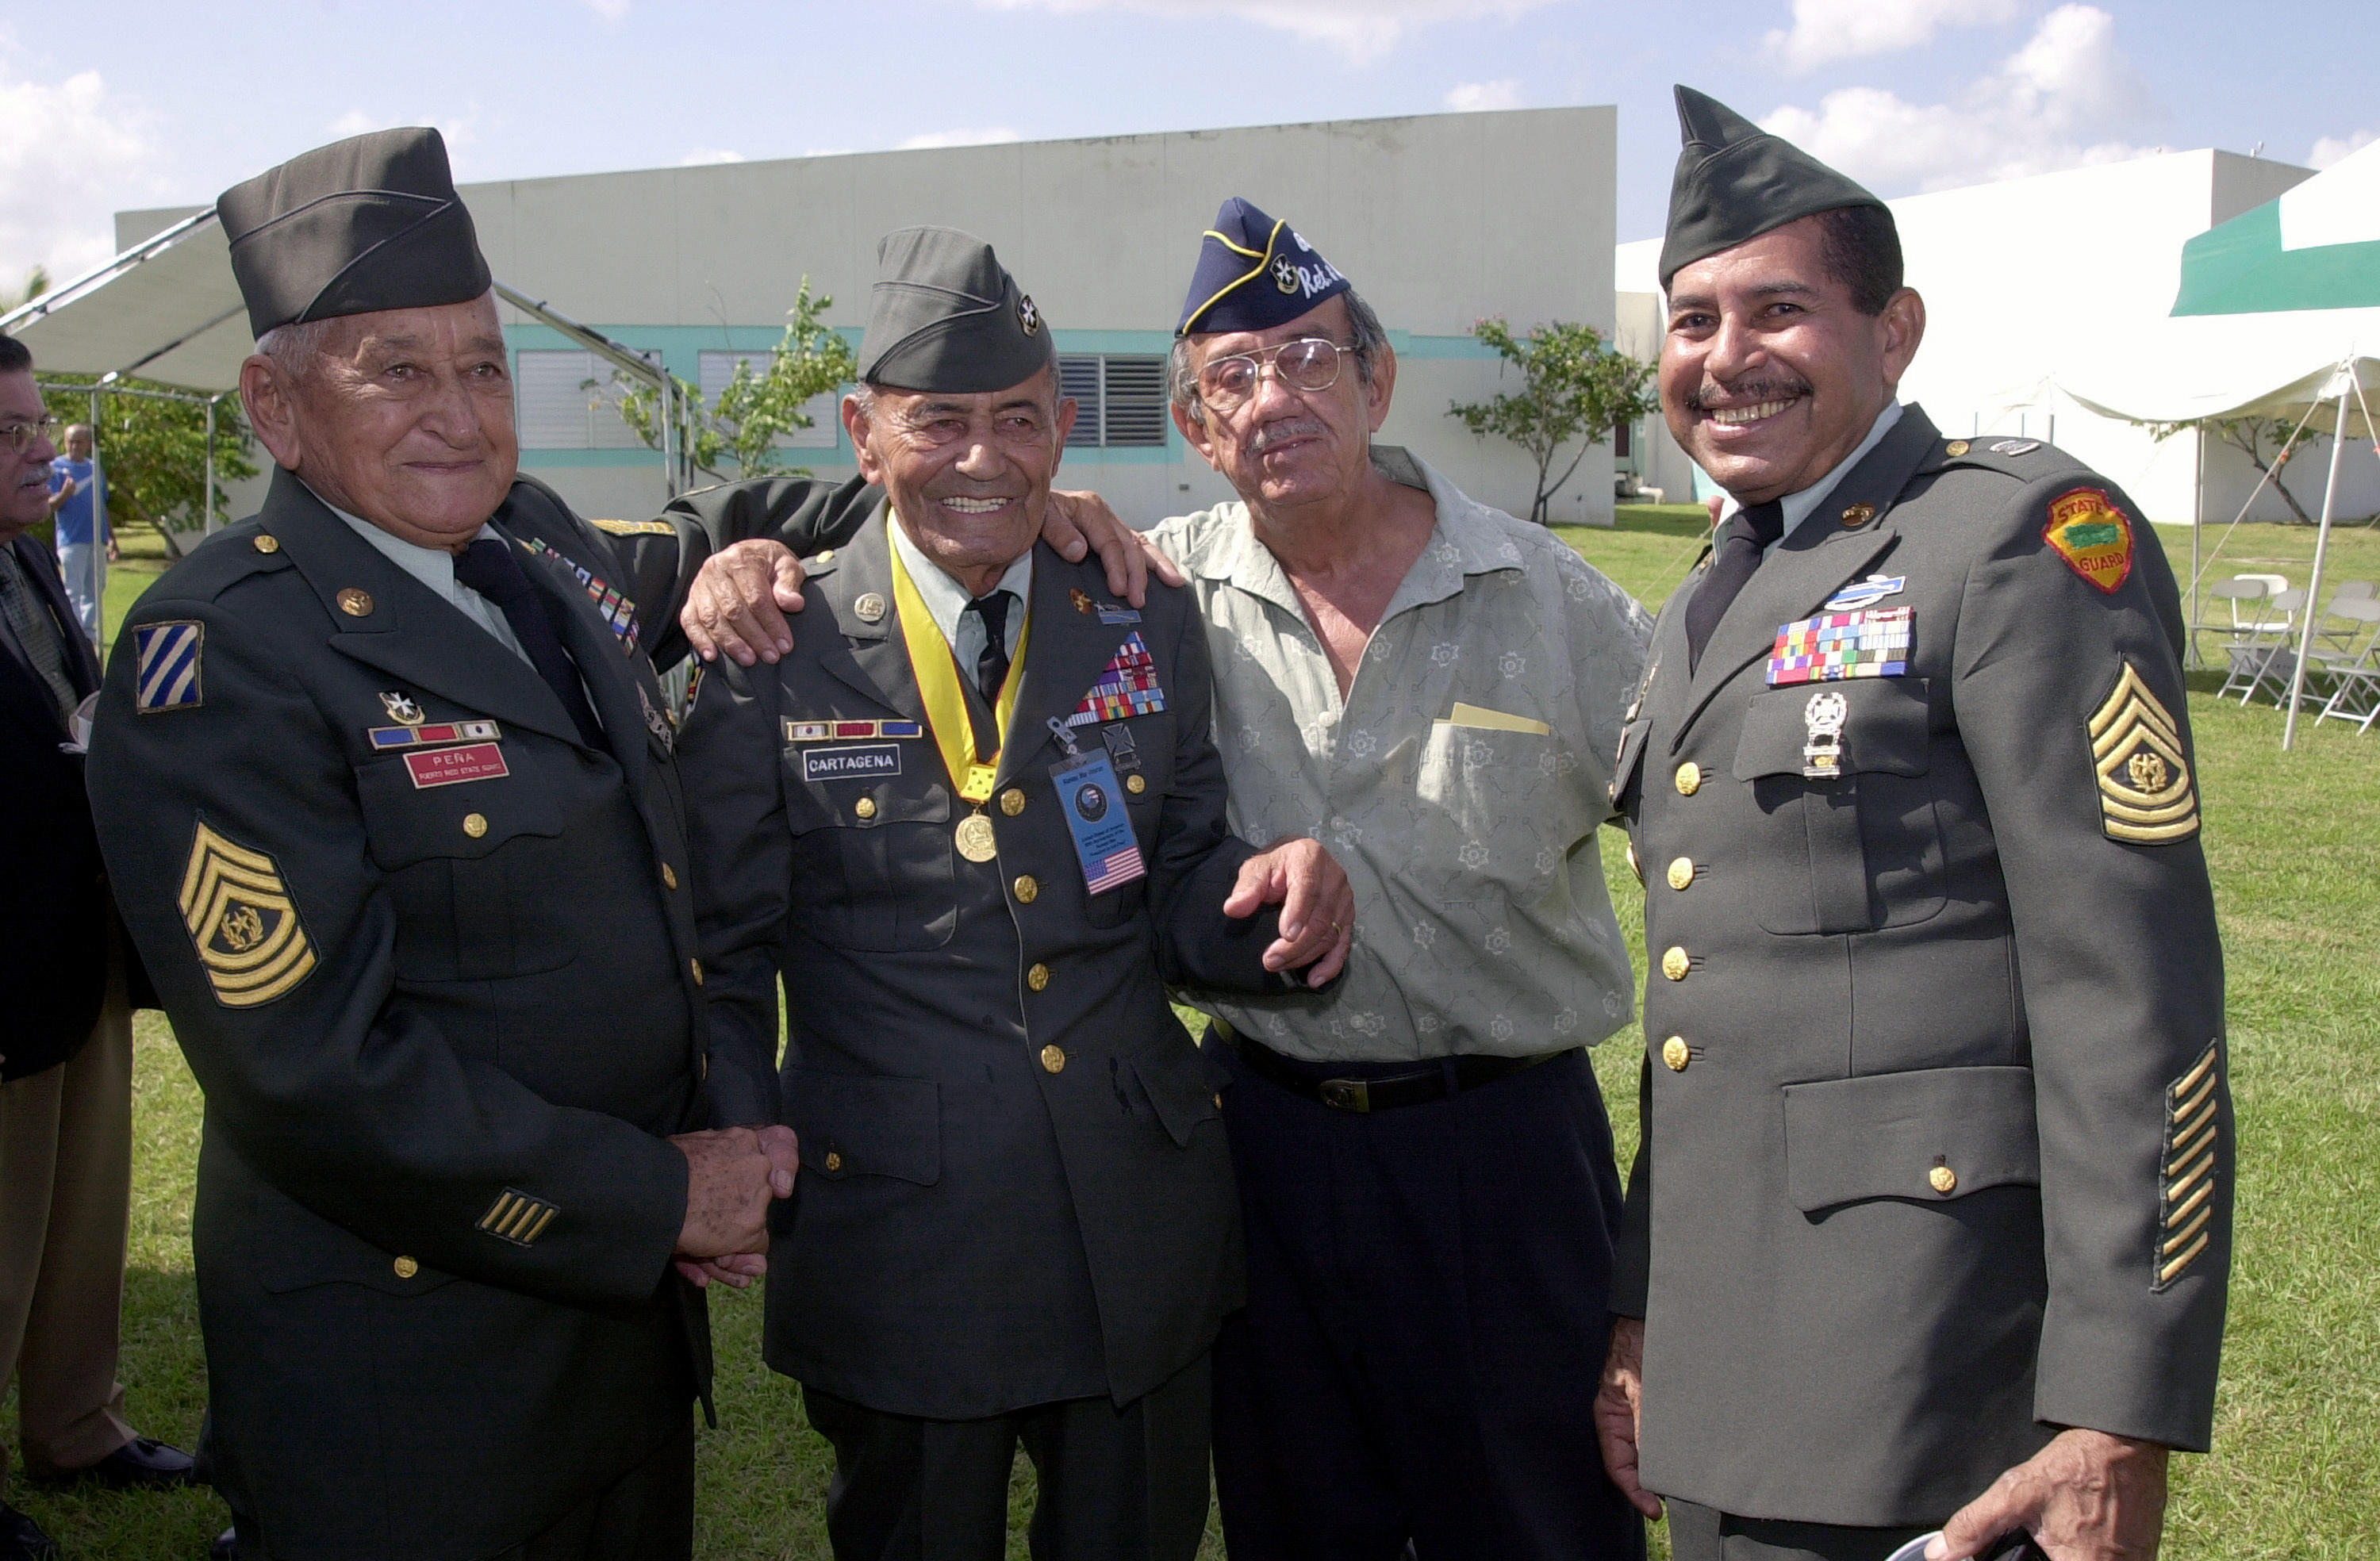 Command Sergeant Major (CSM) Jose Pene, left, Sgt. 1st. Class Modesto Cartagena, second left, and CSM Angel Kuiland, right, veterans of the Korean War during a ceremony at the US Army Reserve center in Puerto Nuevo, Puerto Rico. (National Archives Identifier: 6519407)